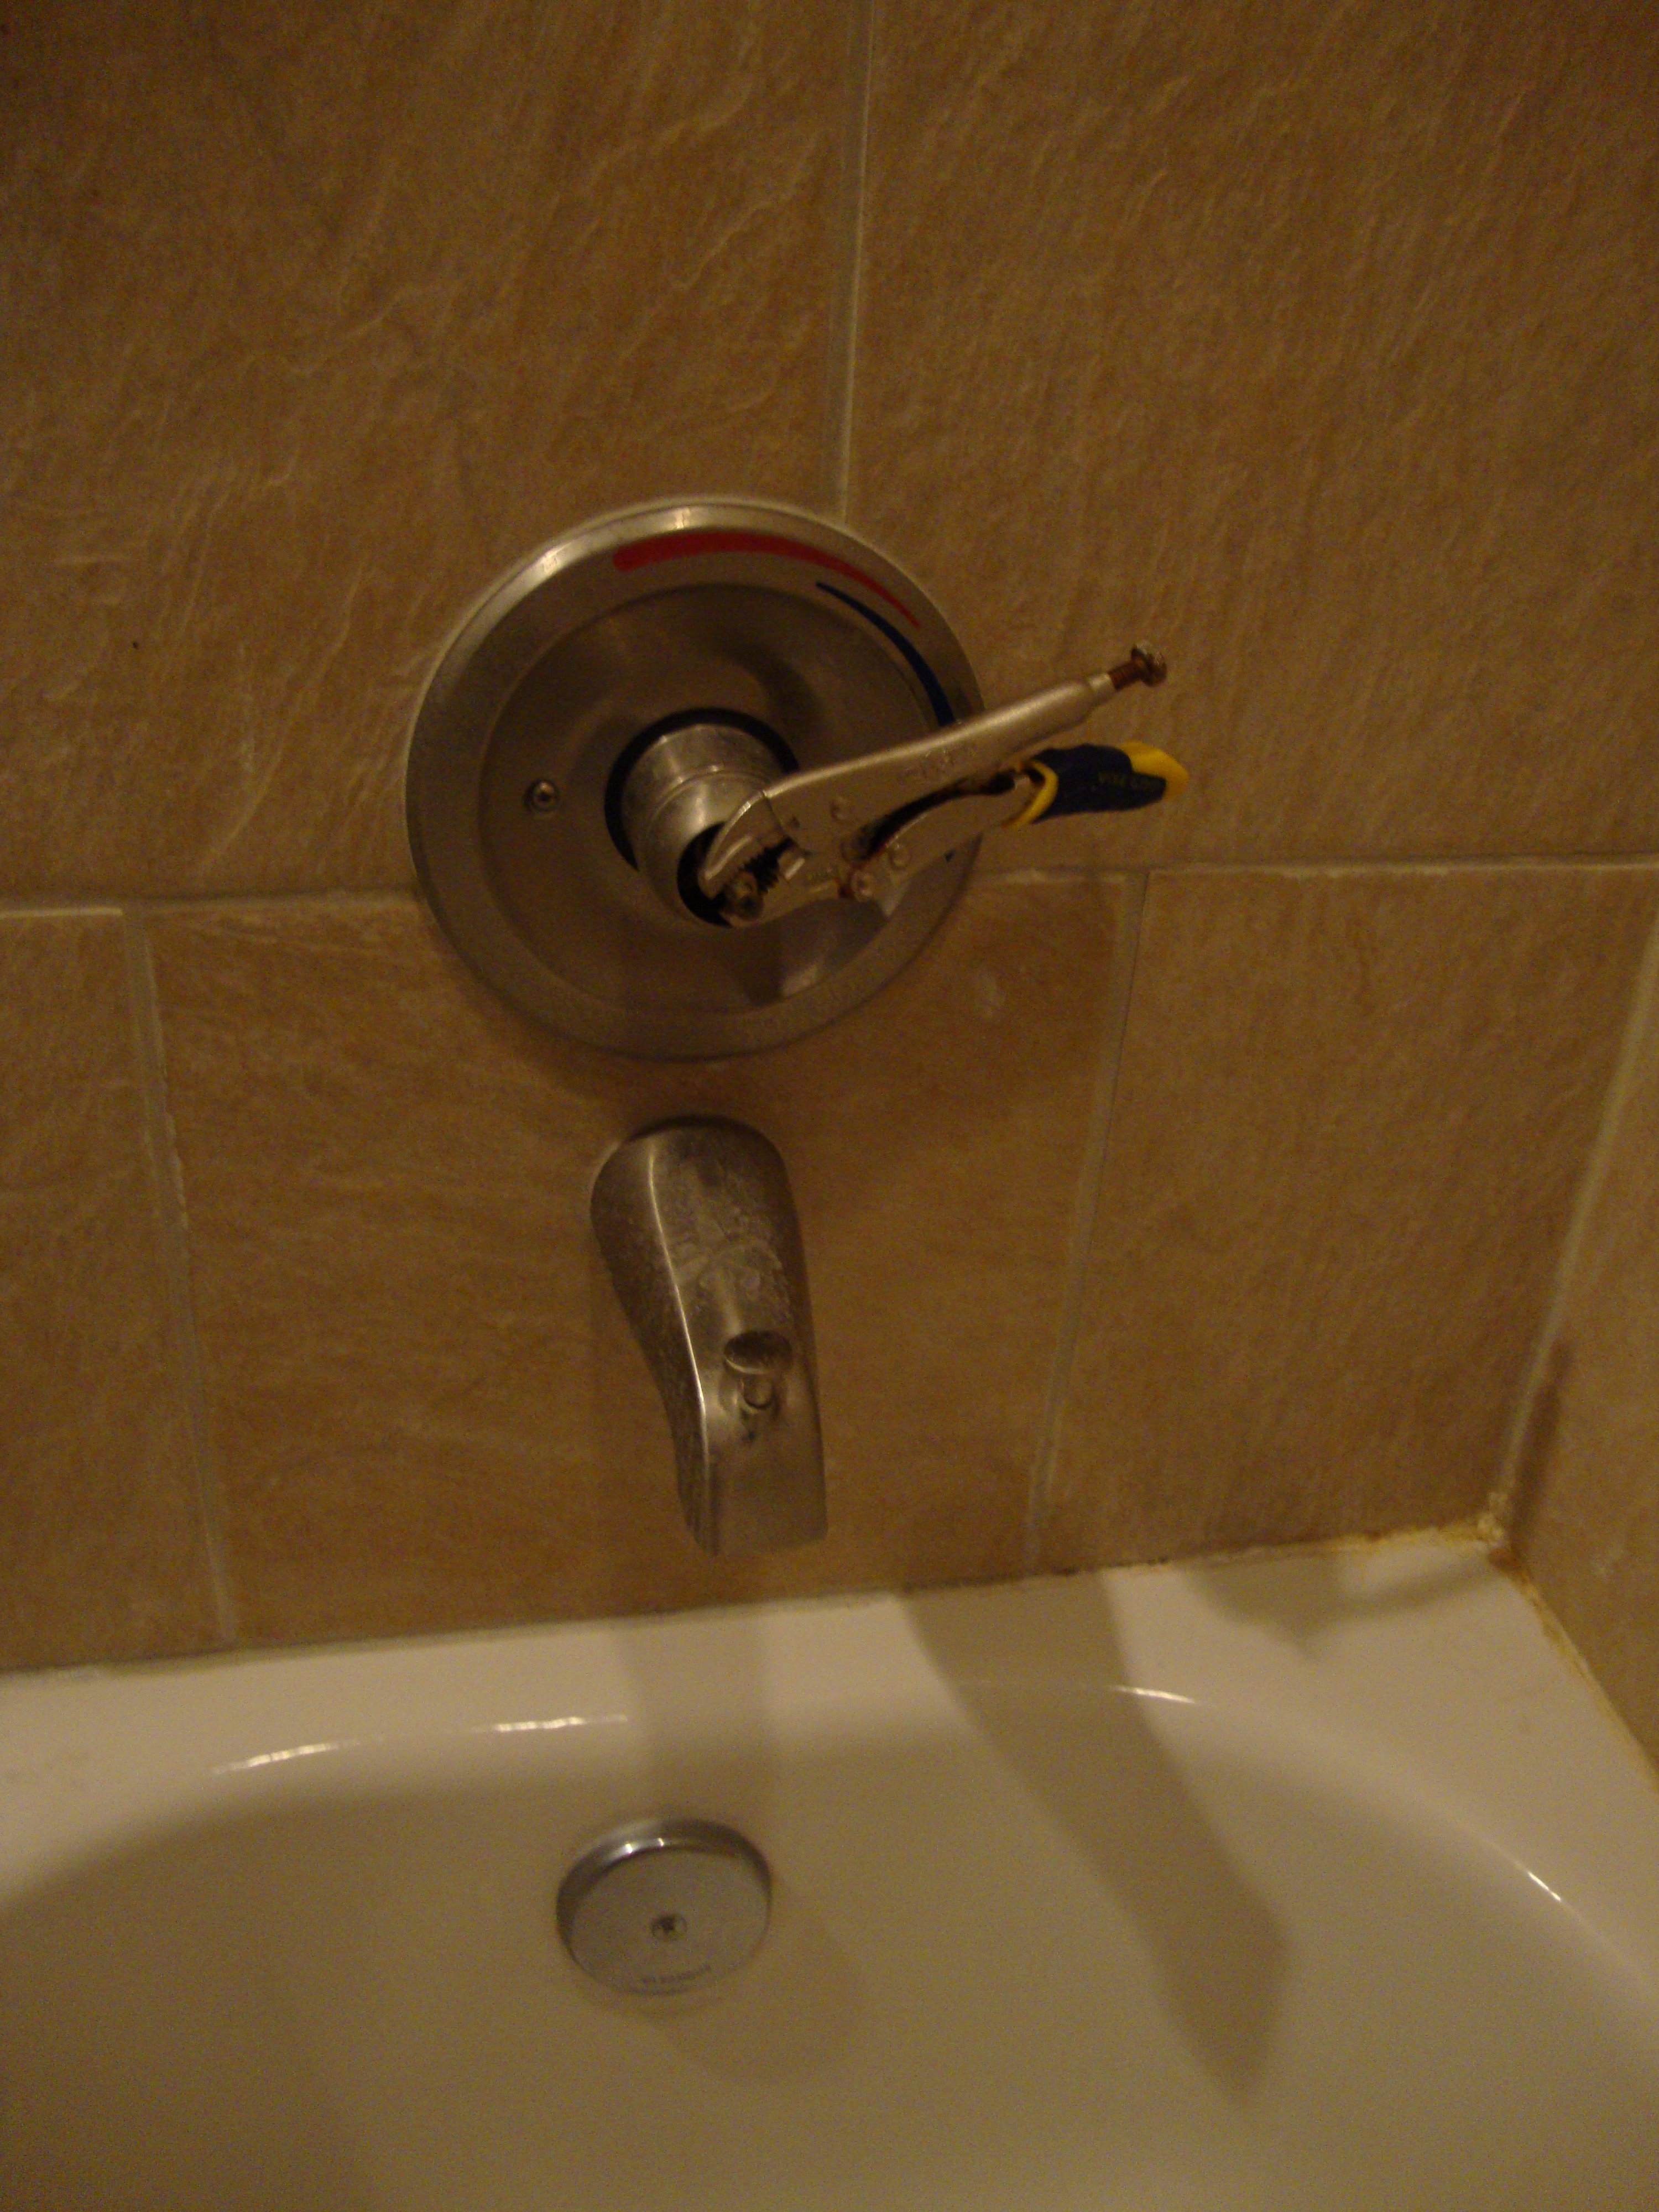 Tightening shower handle